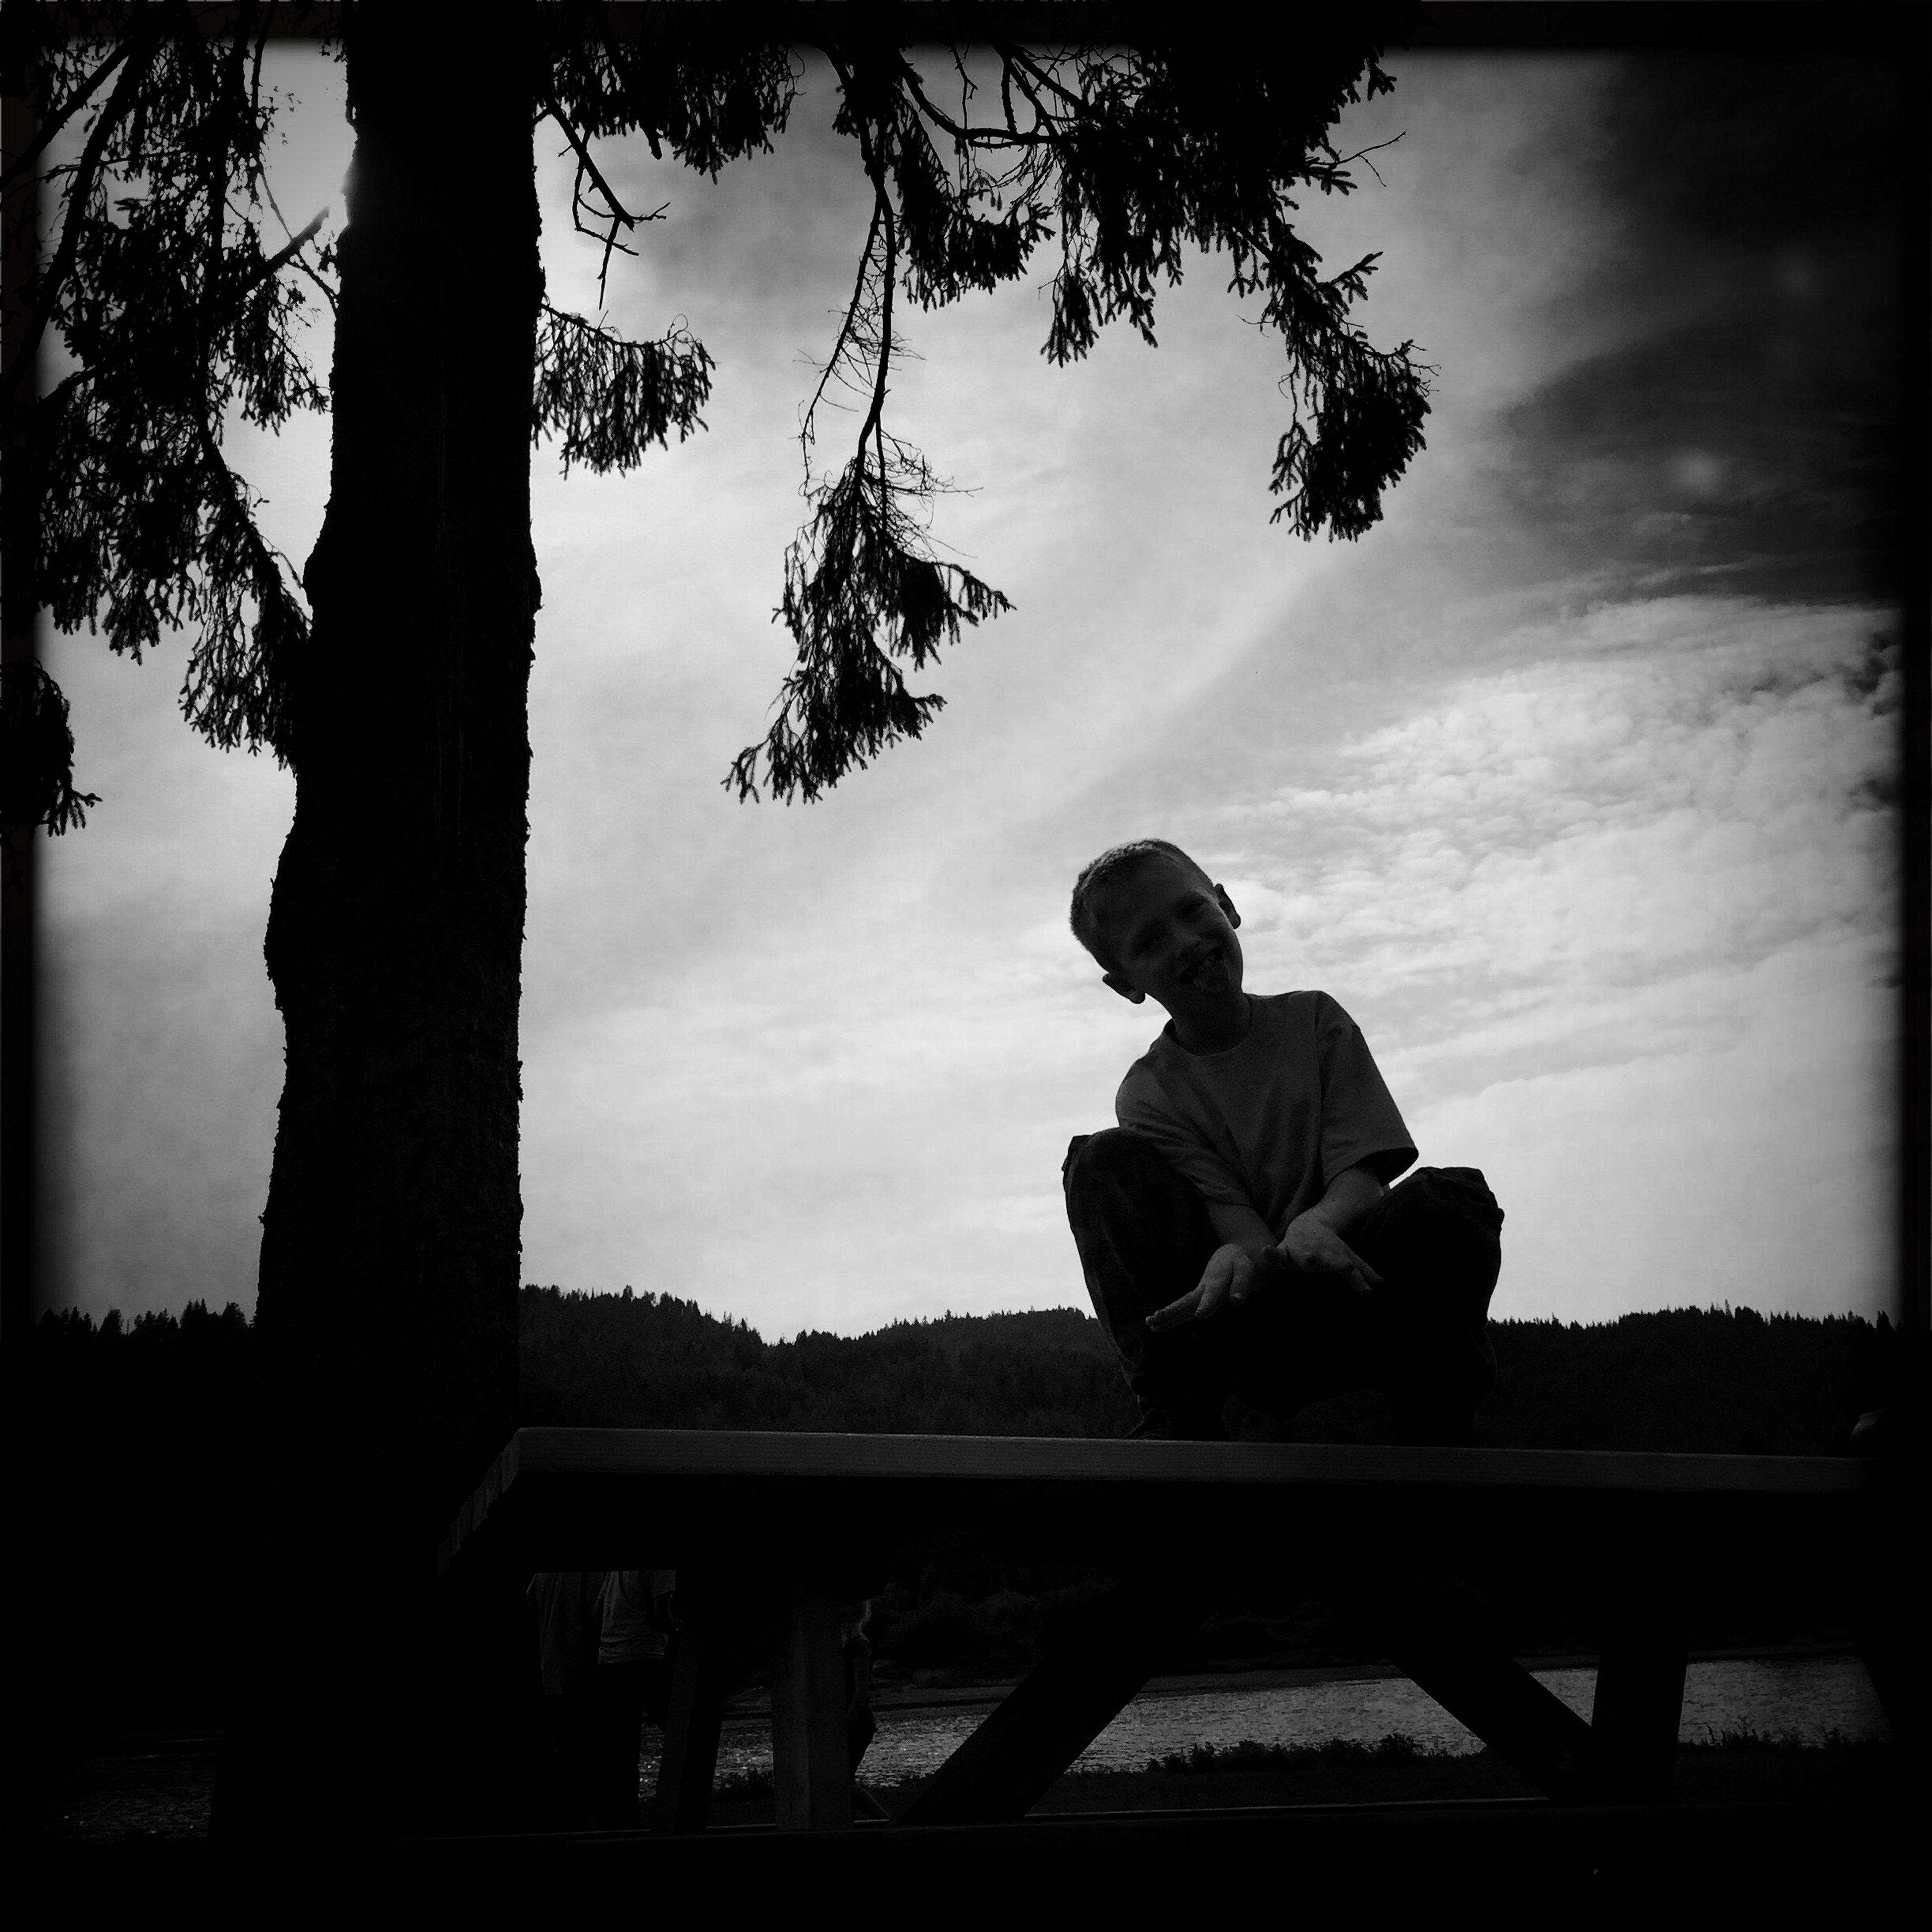 sky, lifestyles, full length, leisure activity, tree, men, silhouette, sitting, rear view, cloud - sky, low angle view, casual clothing, standing, childhood, three quarter length, side view, cloud